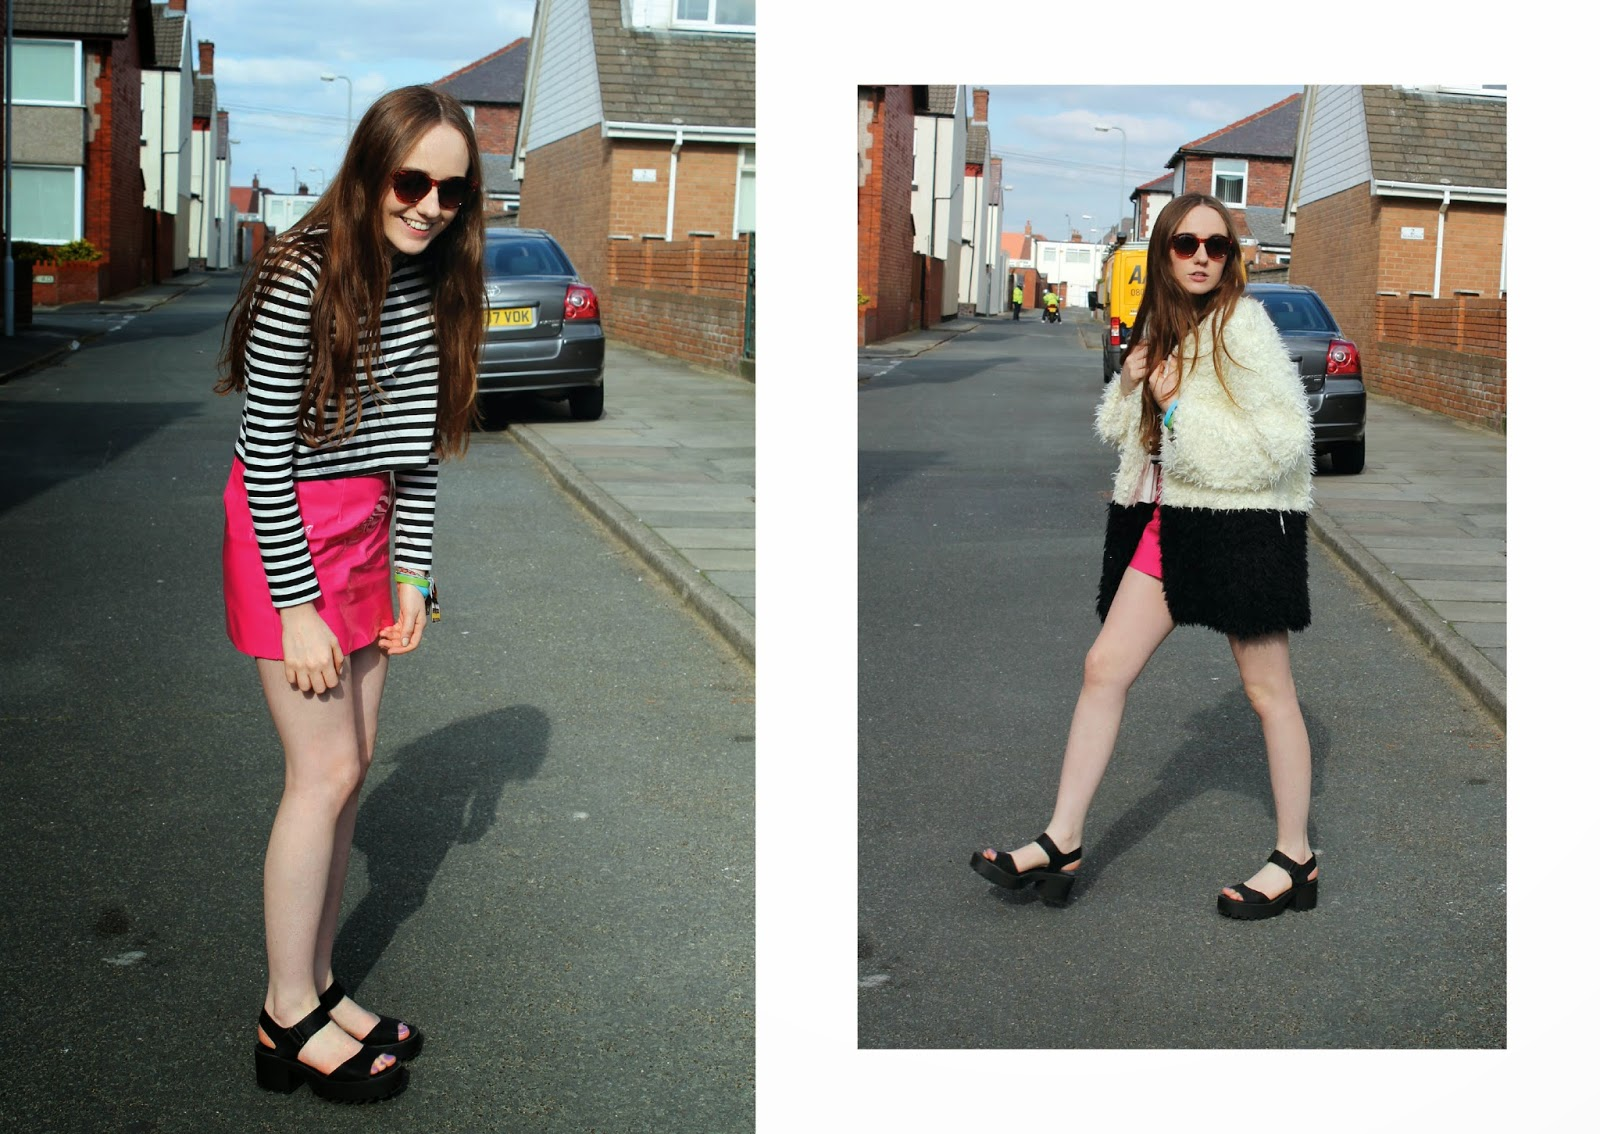 pink pvc mini skirt, daisy street skirt, pvc a line skirt, stripey crop top, primark sunglasses, chunky cleated sole sandals, minkpink fashion fluffy coat, minkpink fur coat